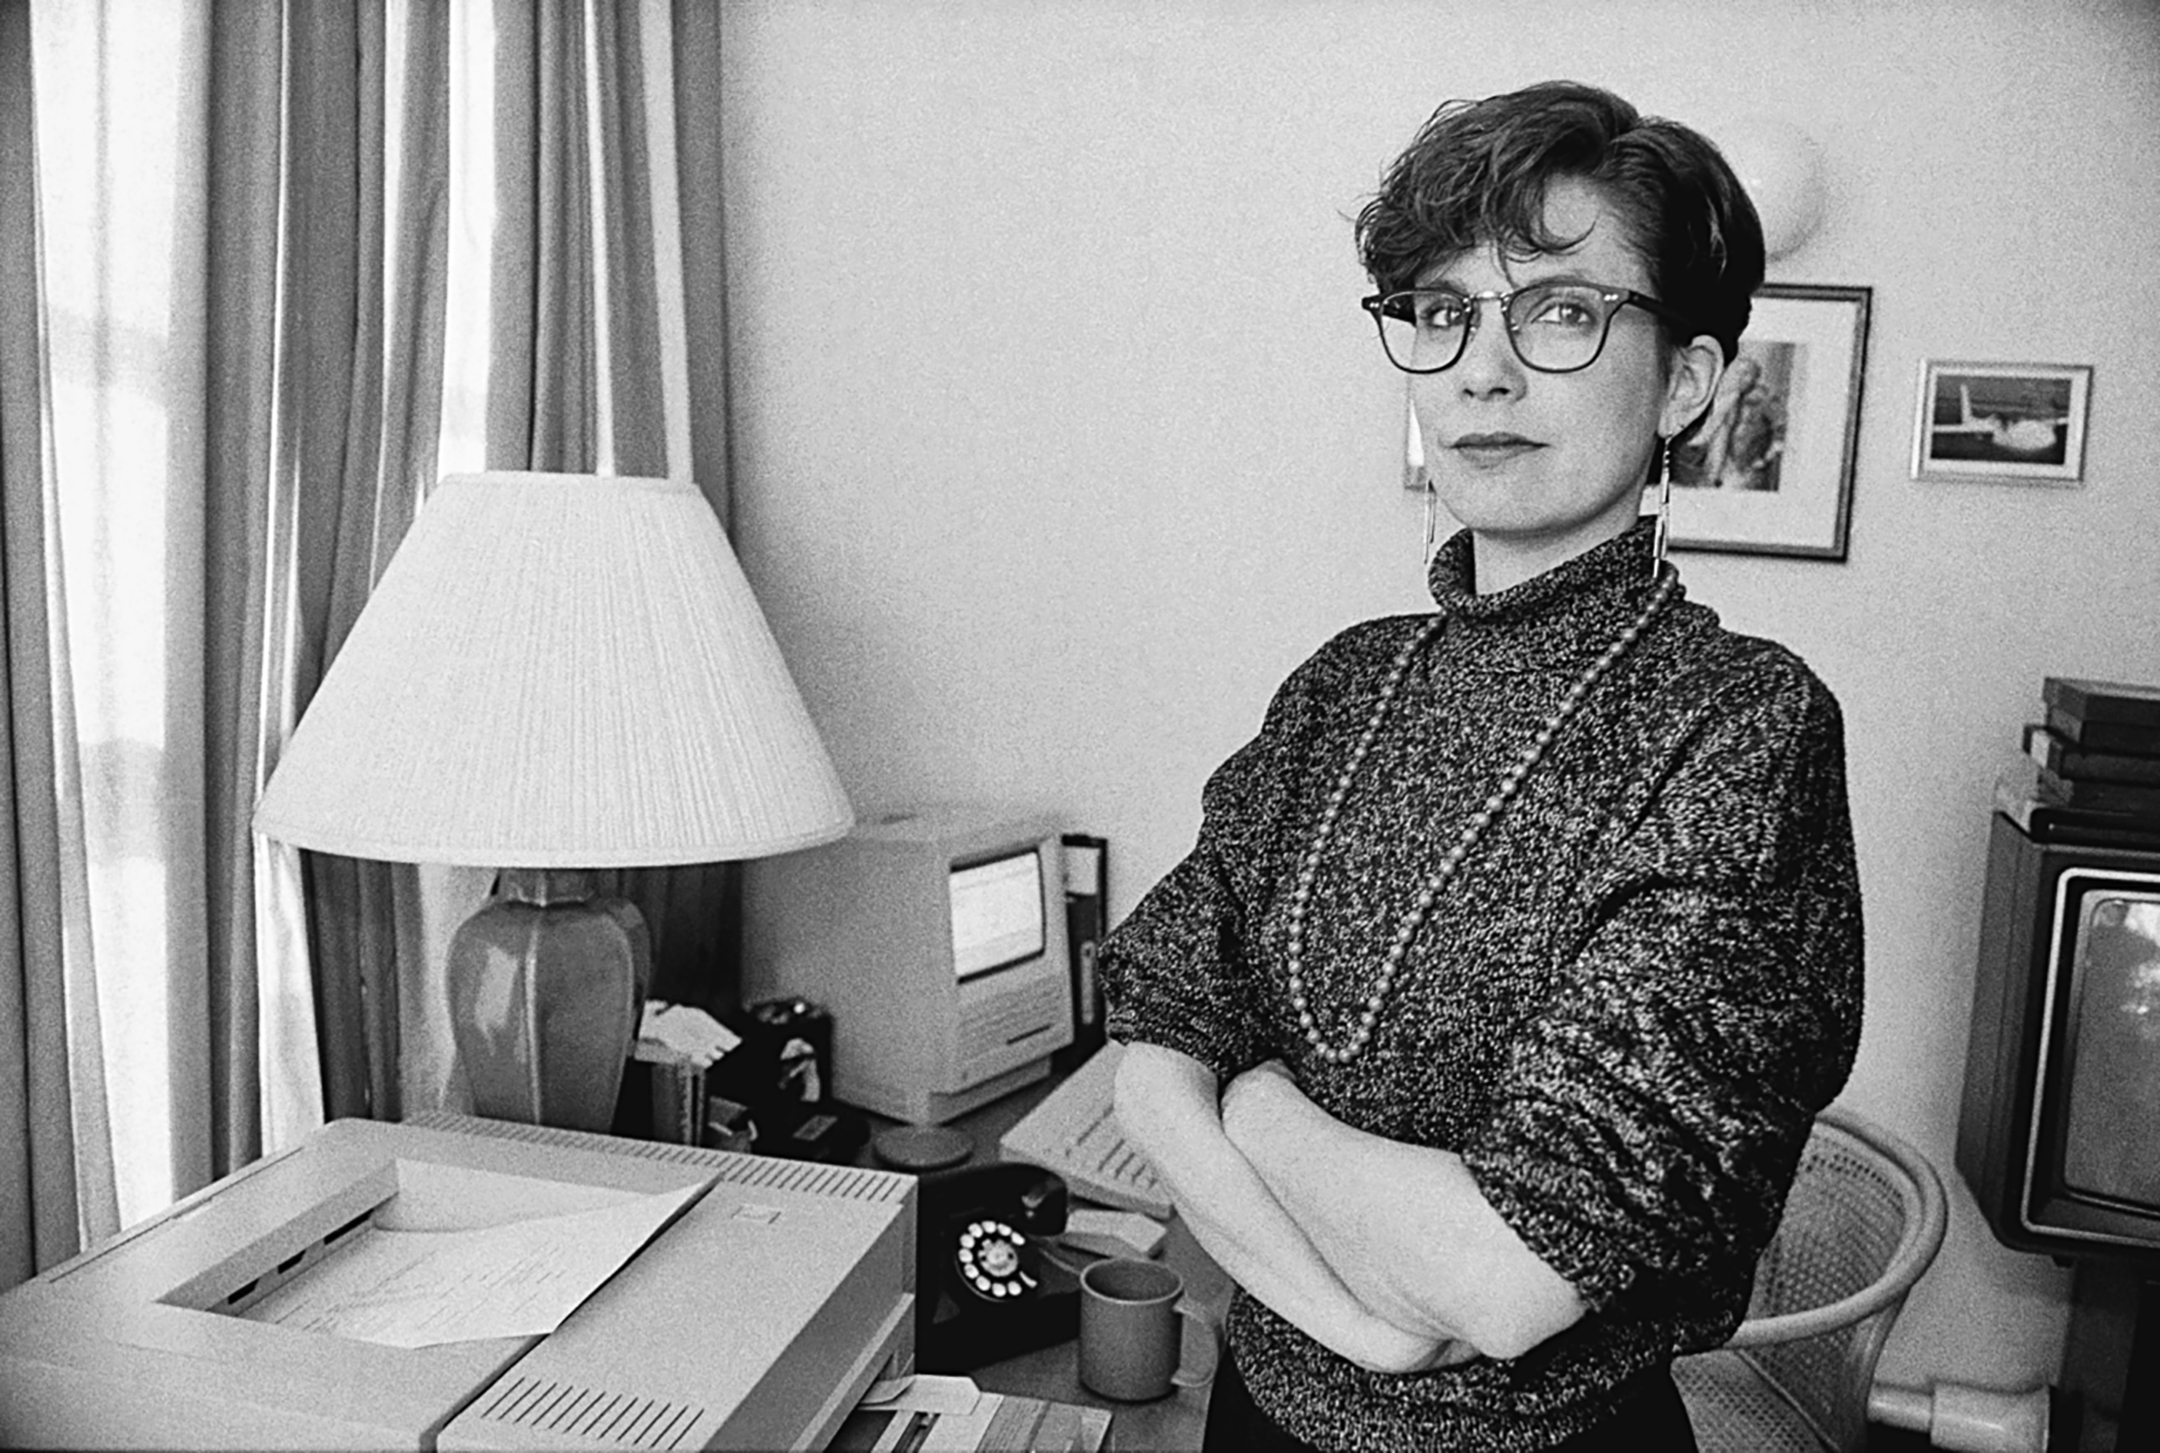 black and white photo of a woman with short hair and glasses standing with her arms crossed in front of a computer and printer